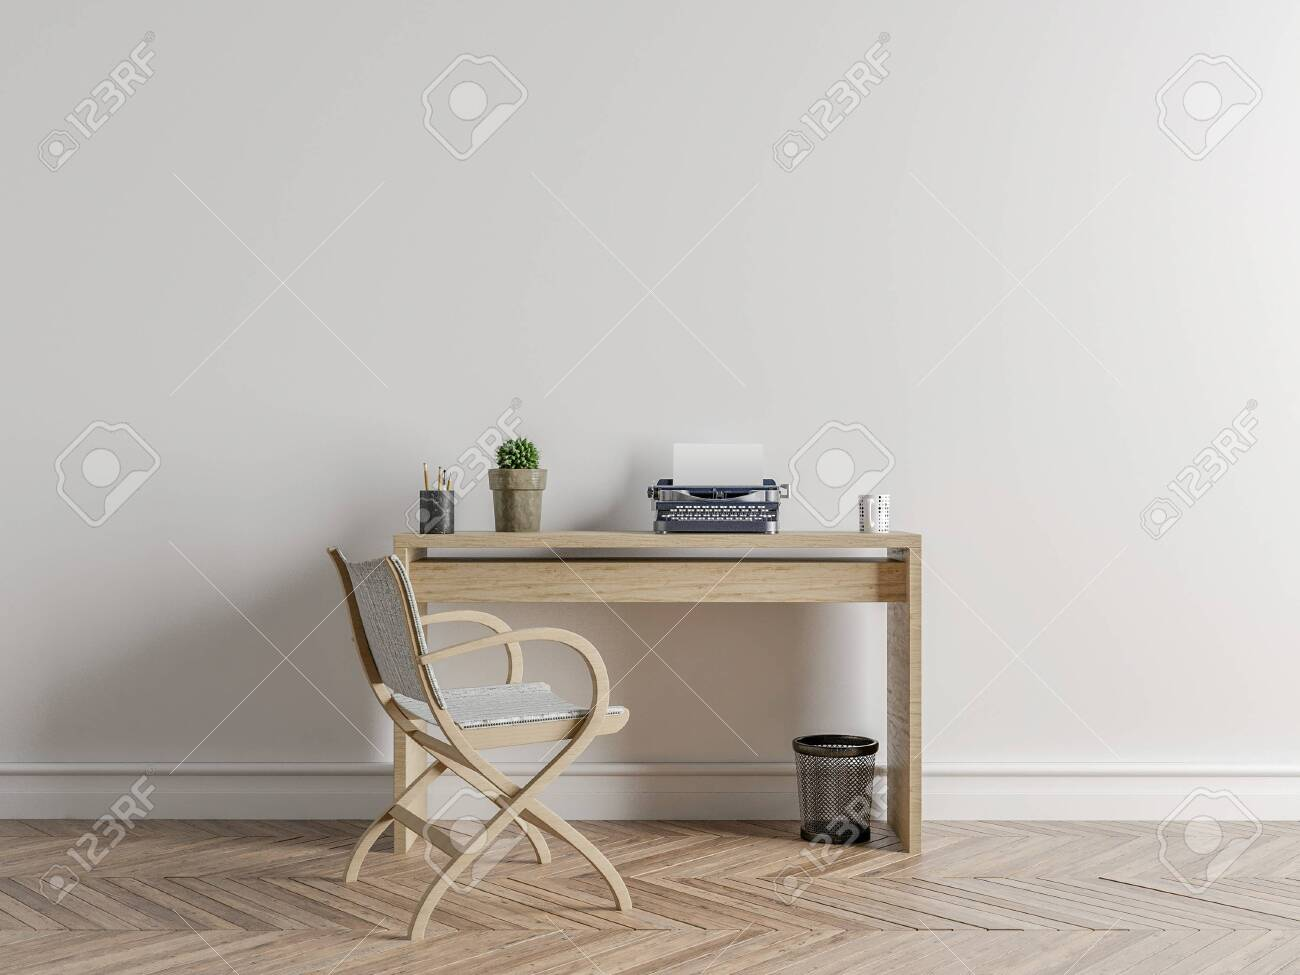 Picture of: Wall Bed And Chair Modern Mid Century Bedside Table And White Stock Photo Picture And Royalty Free Image Image 142847994